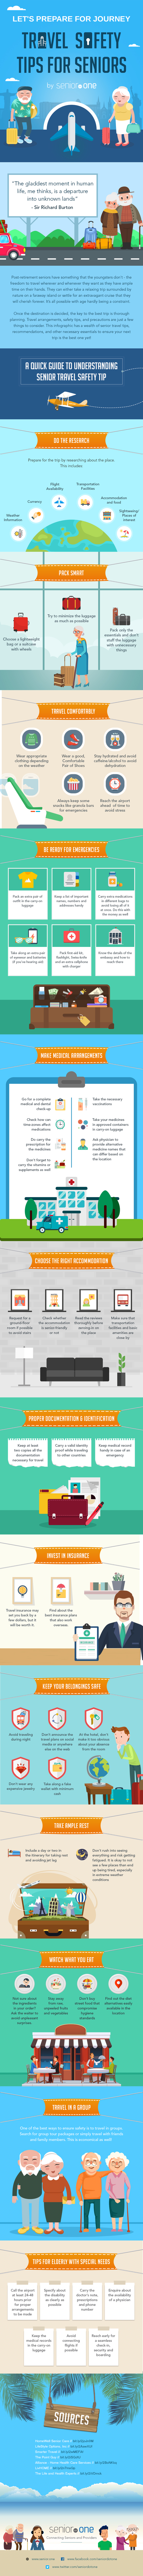 Wanderlust Ahoy! Travel and Safety Tips for Seniors - Infographic